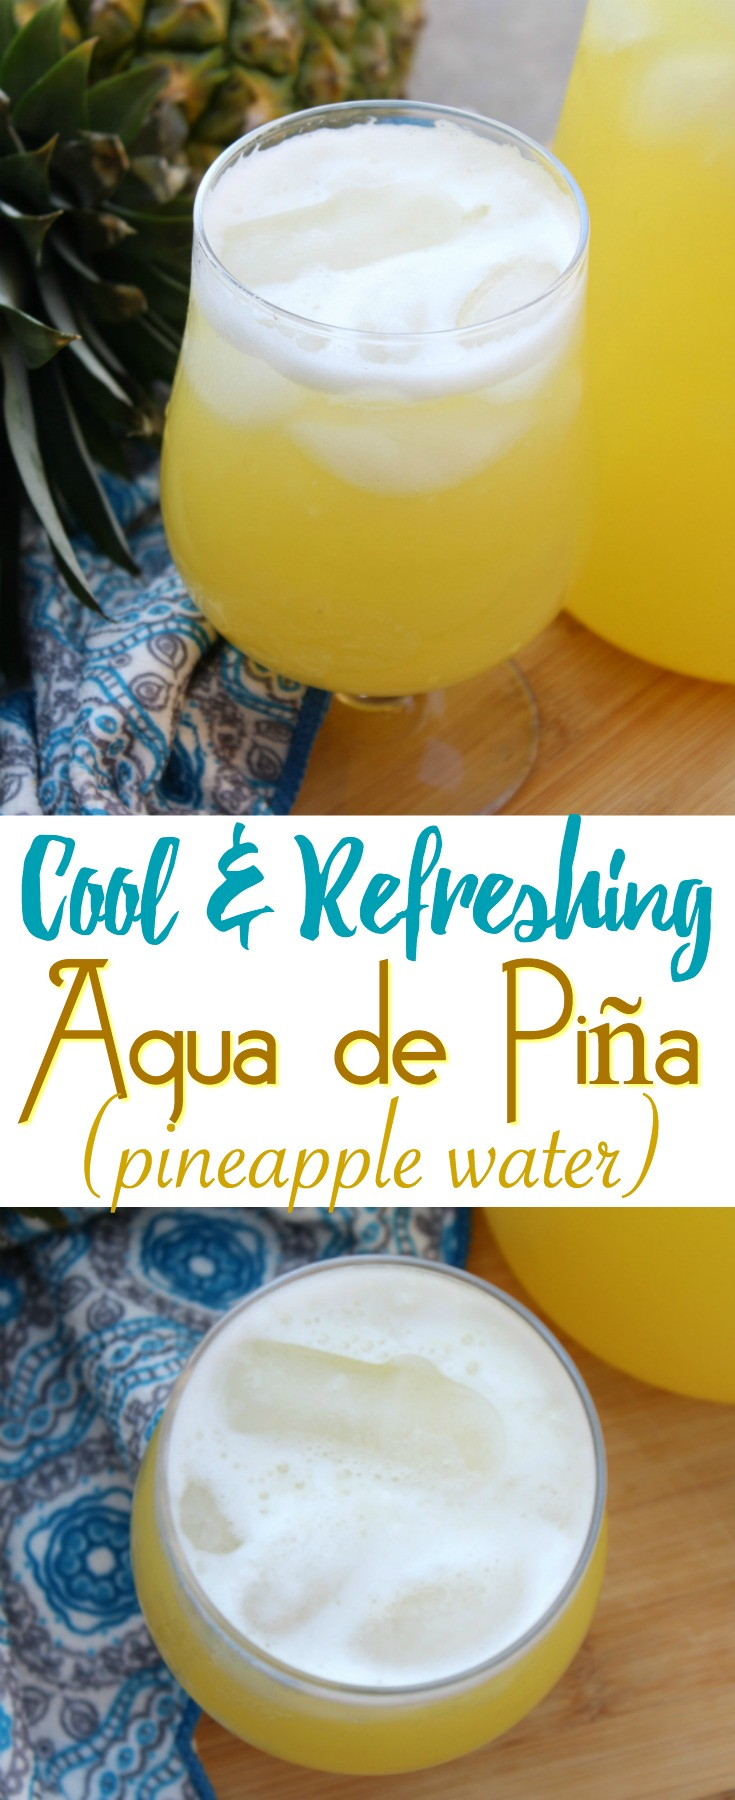 Summer is the best time of the year to enjoy Agua de Piña, or Pineapple Agua Fresca. It's deliciously sweet and easy to make at home!